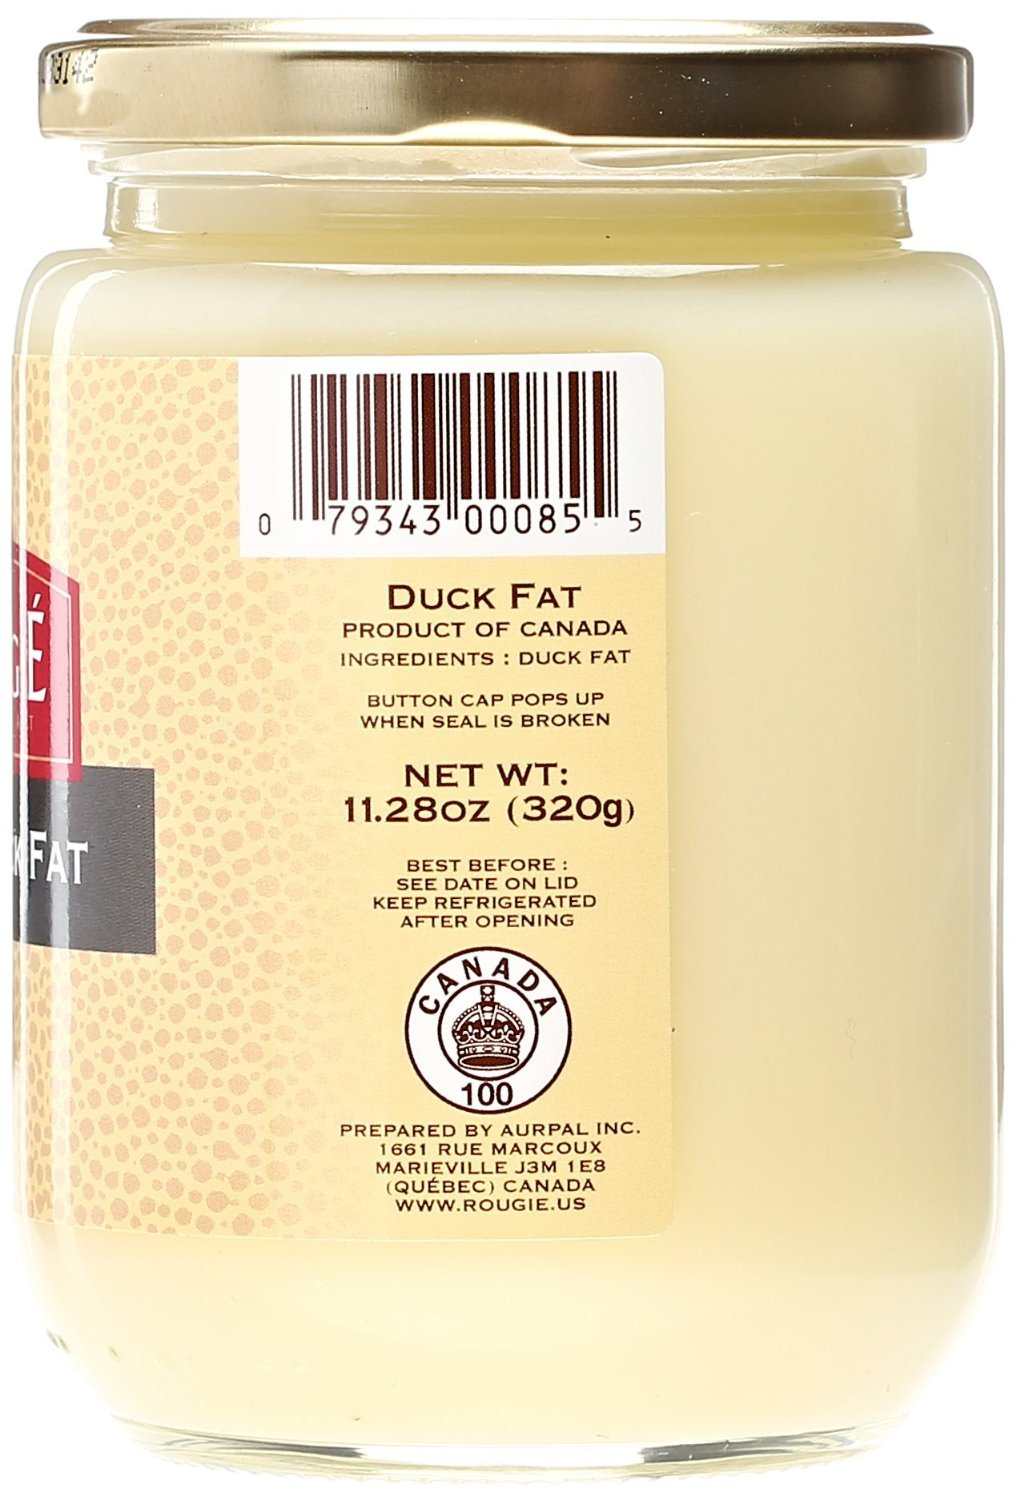 Rougie Rendered Duck Fat 320g 11.2 Ounce (4 PACK) by Rougie (Image #3)